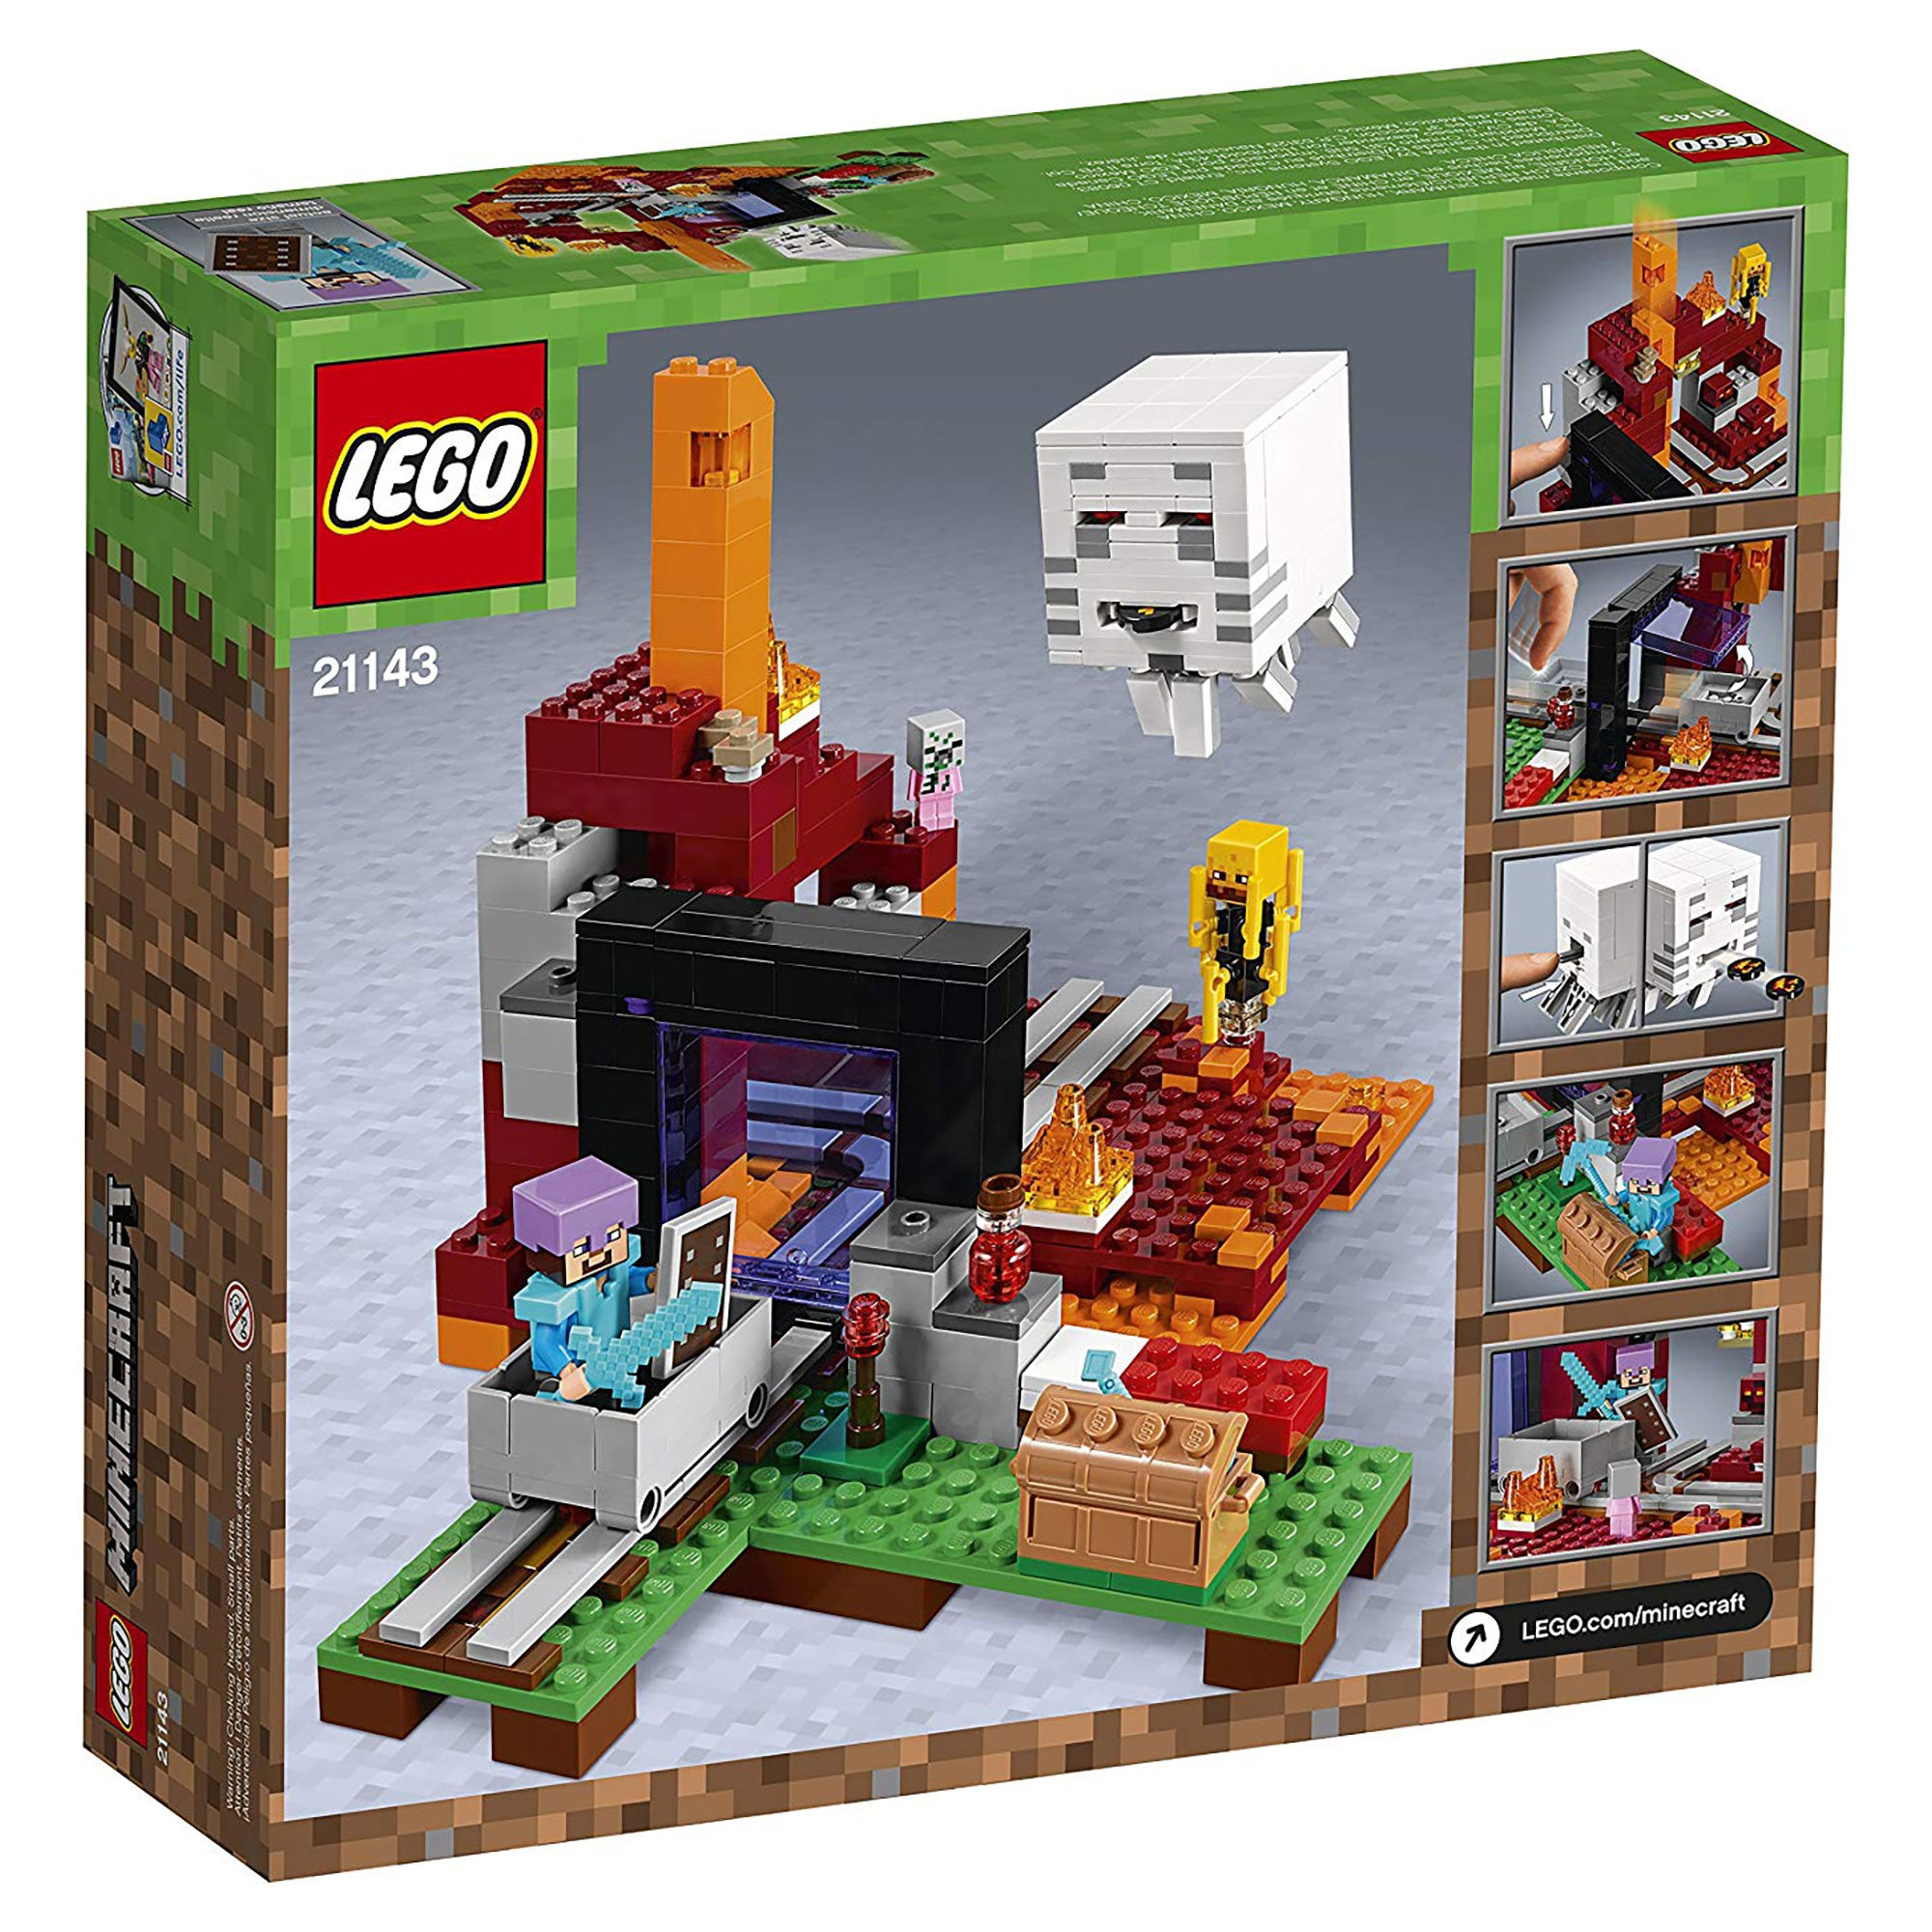 Minecraft The Nether Portal Lego Building Kit Official Minecraft Store Powered By J Nx